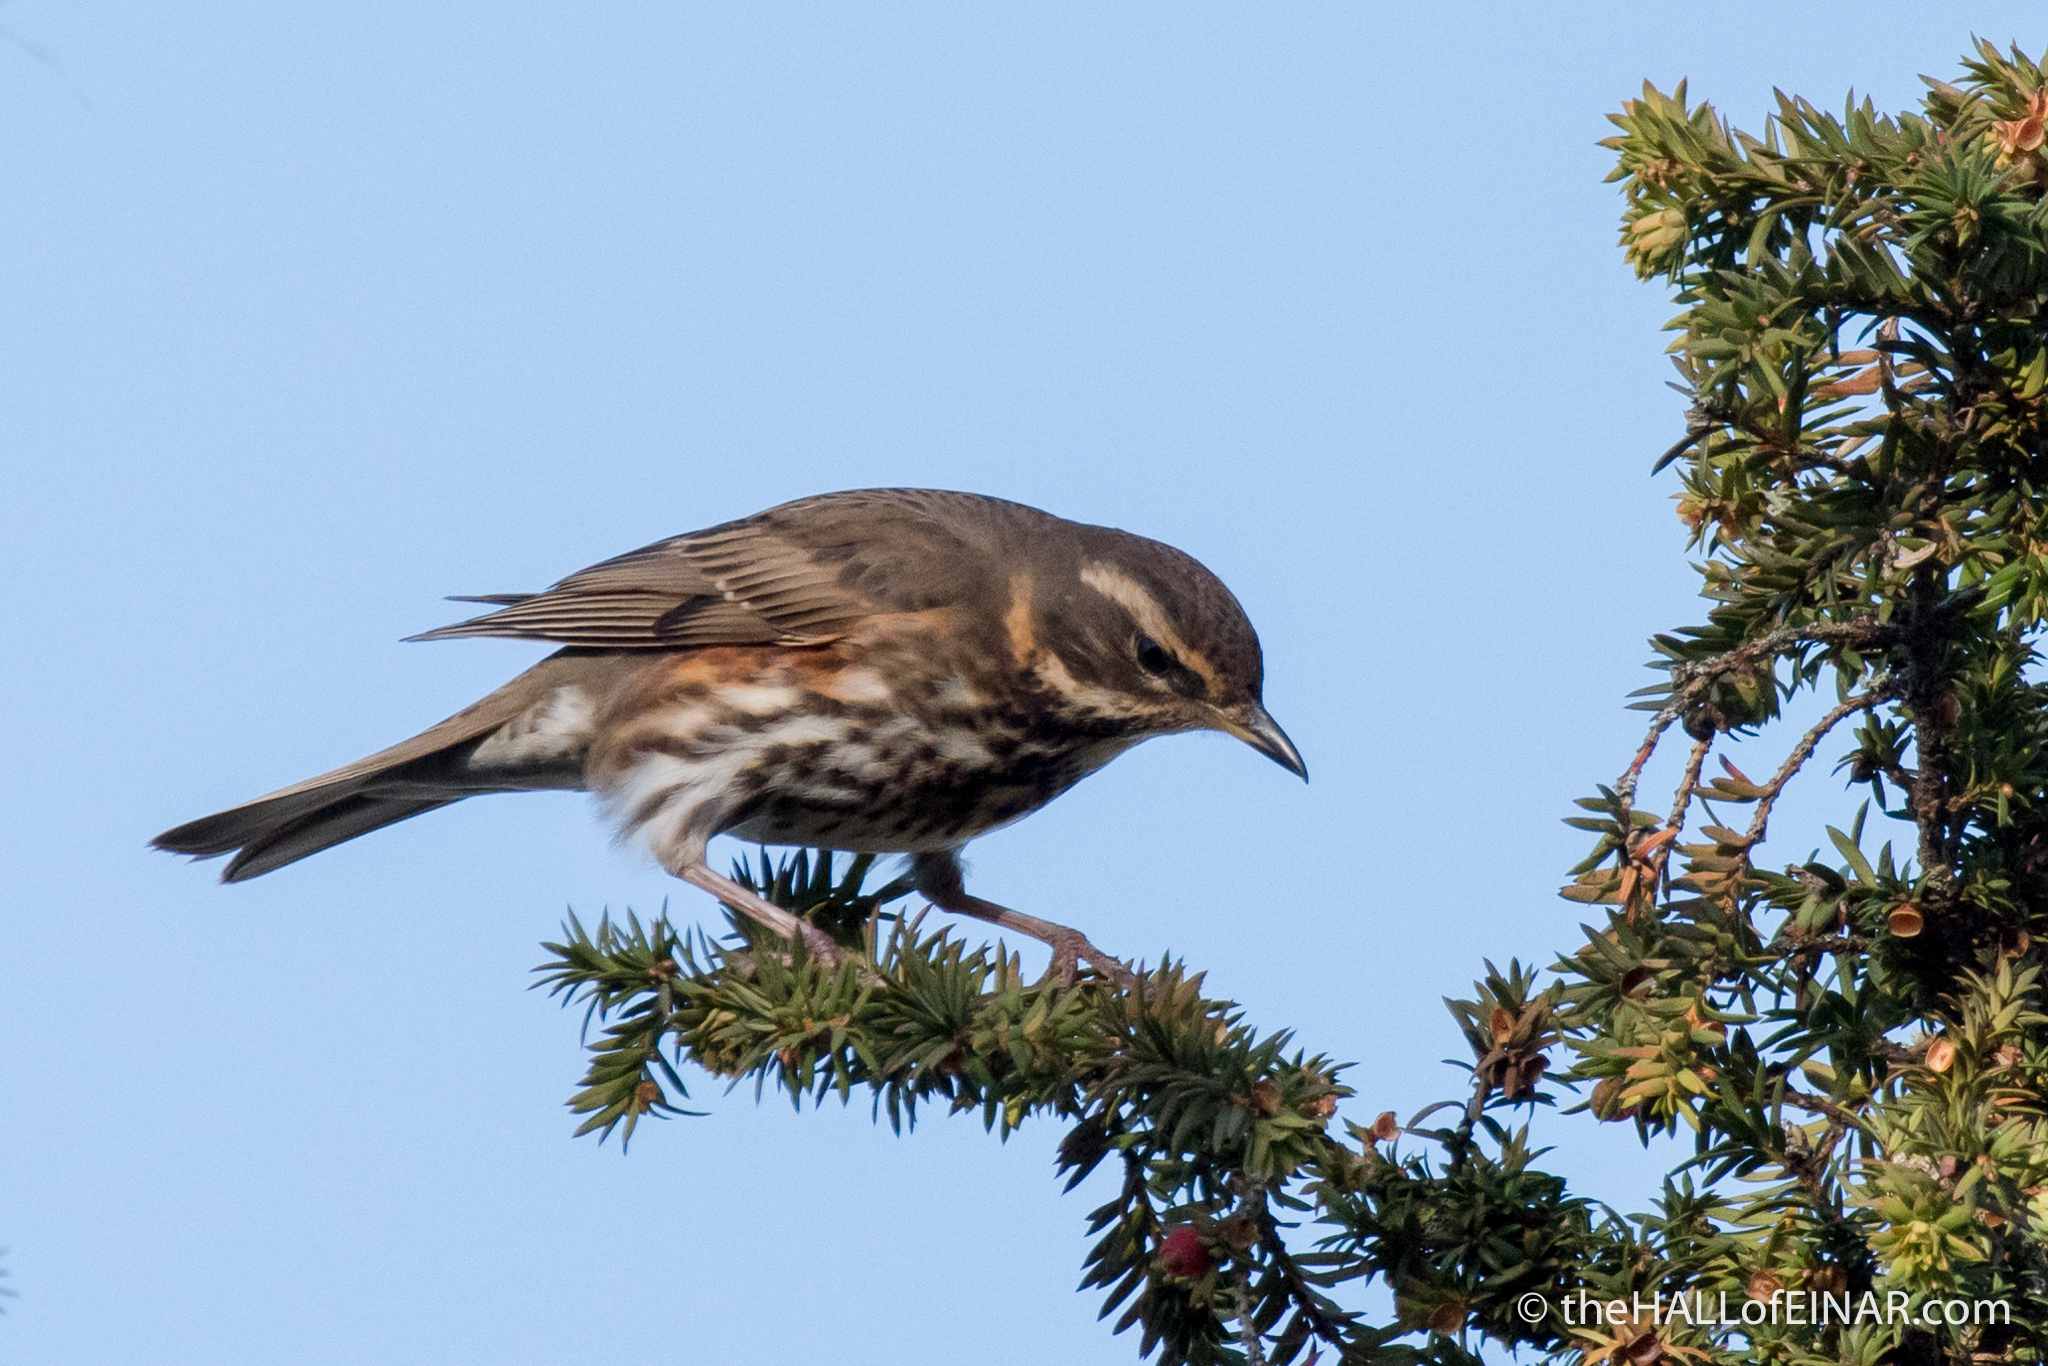 Redwing - The Hall of Einar - photograph (c) David Bailey (not the)